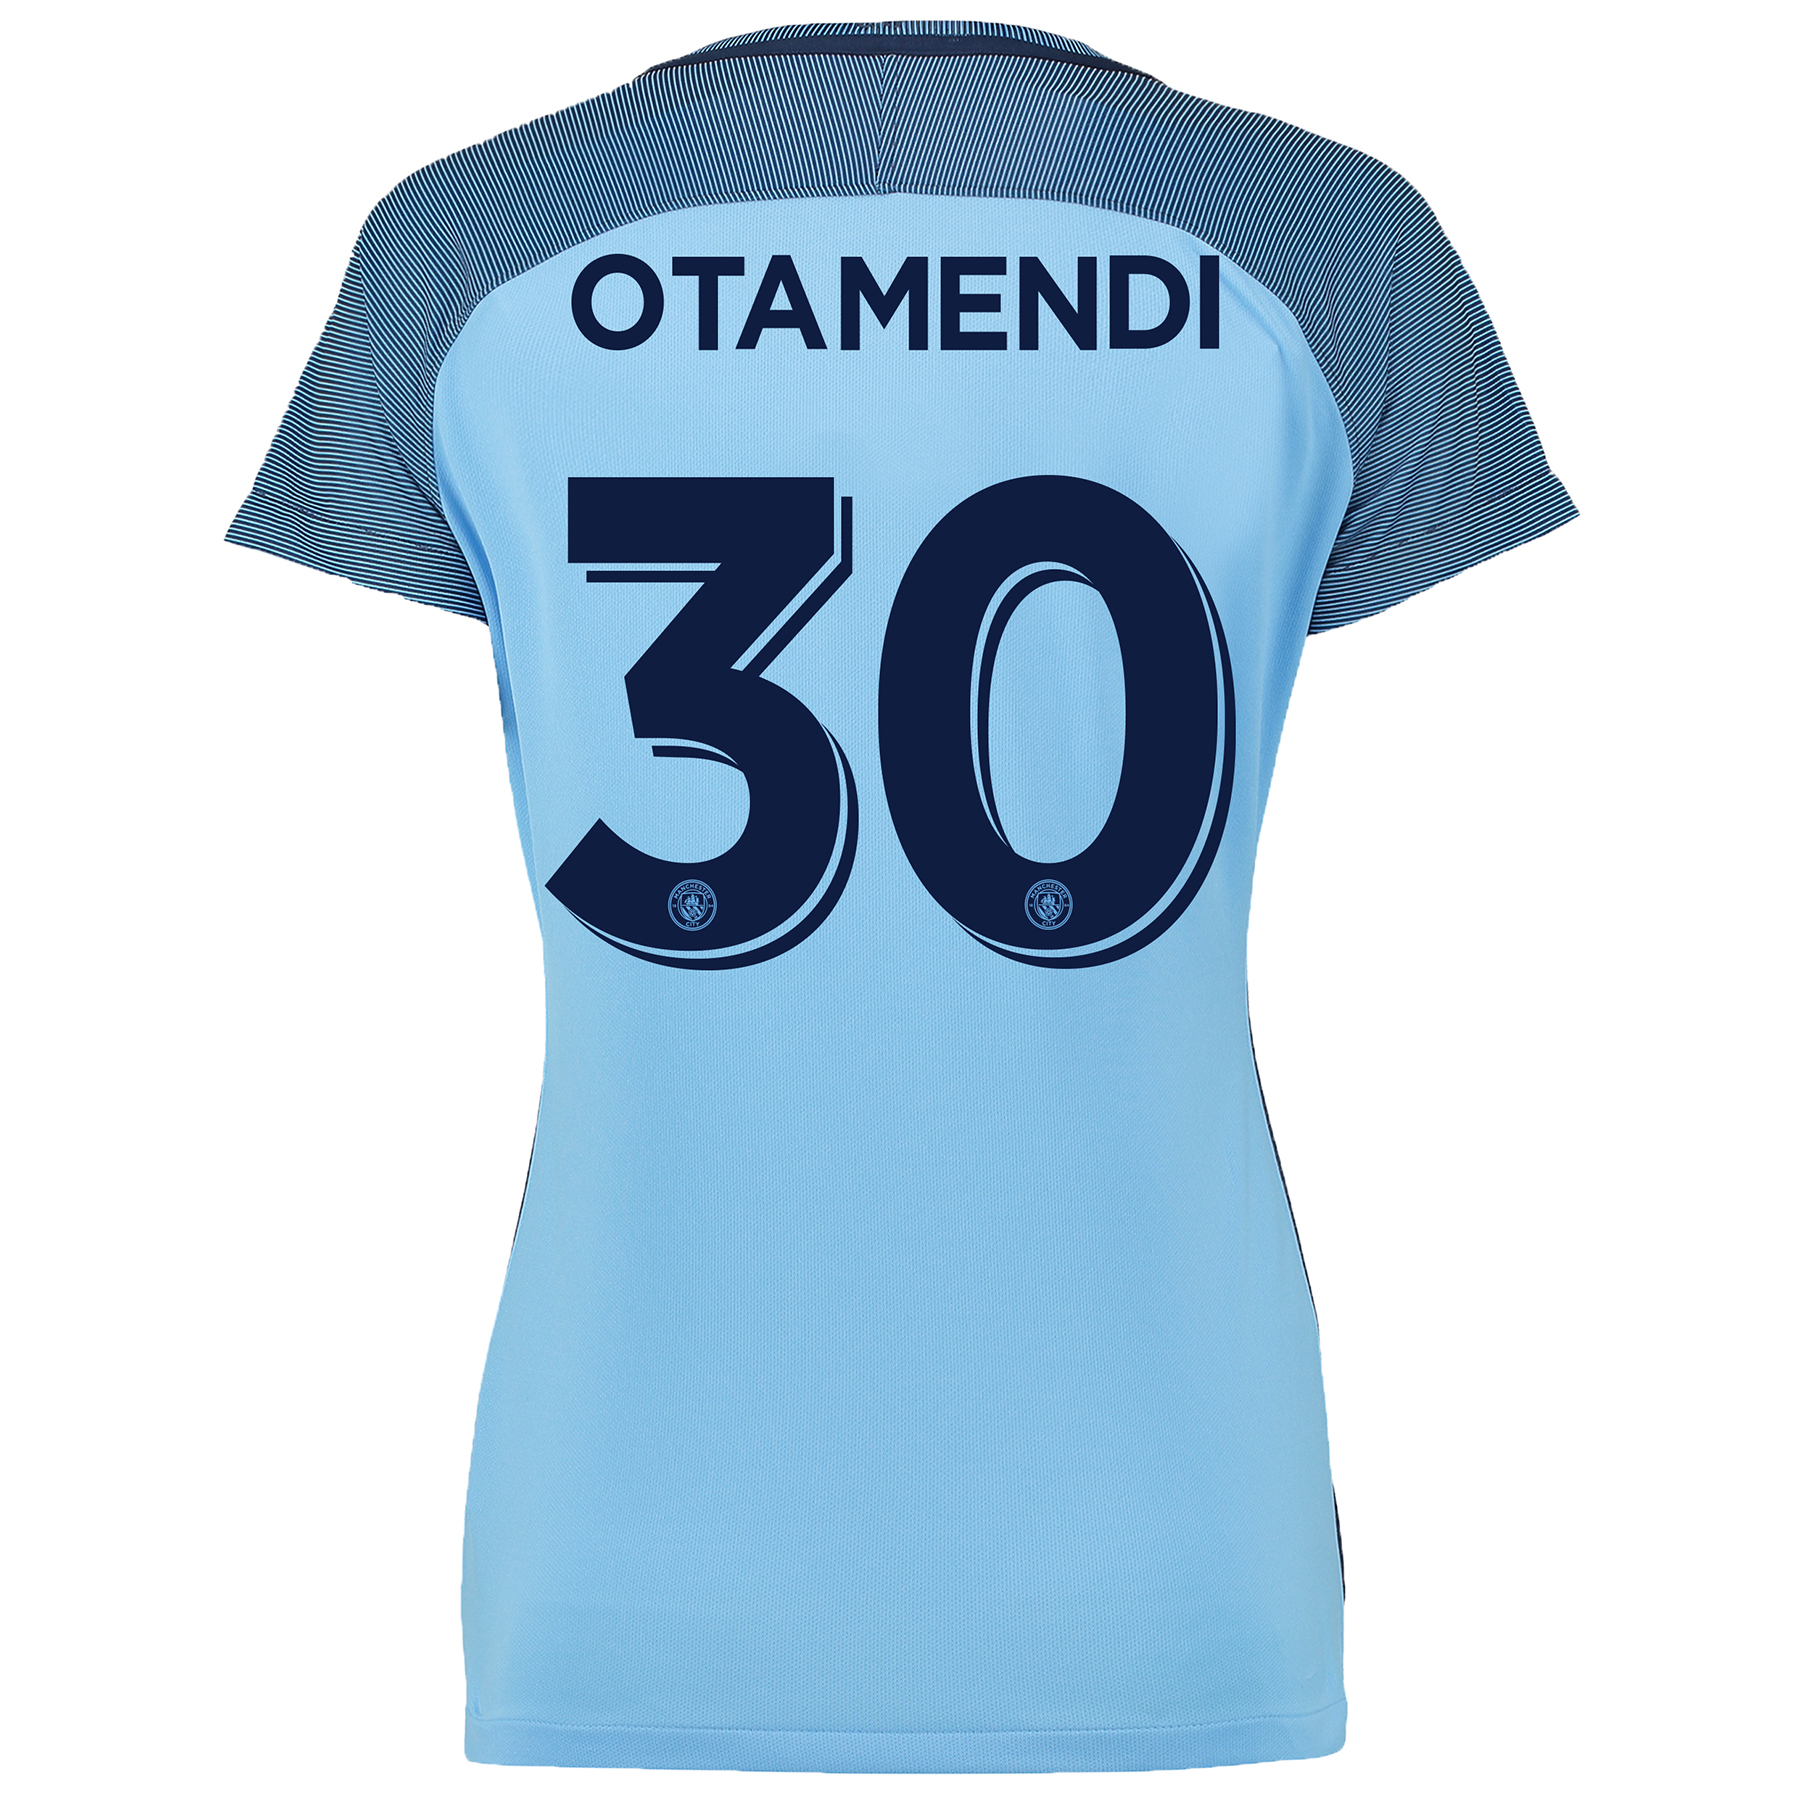 Manchester City Cup Home Shirt 2016-17 - Womens with Otamendi 30 print